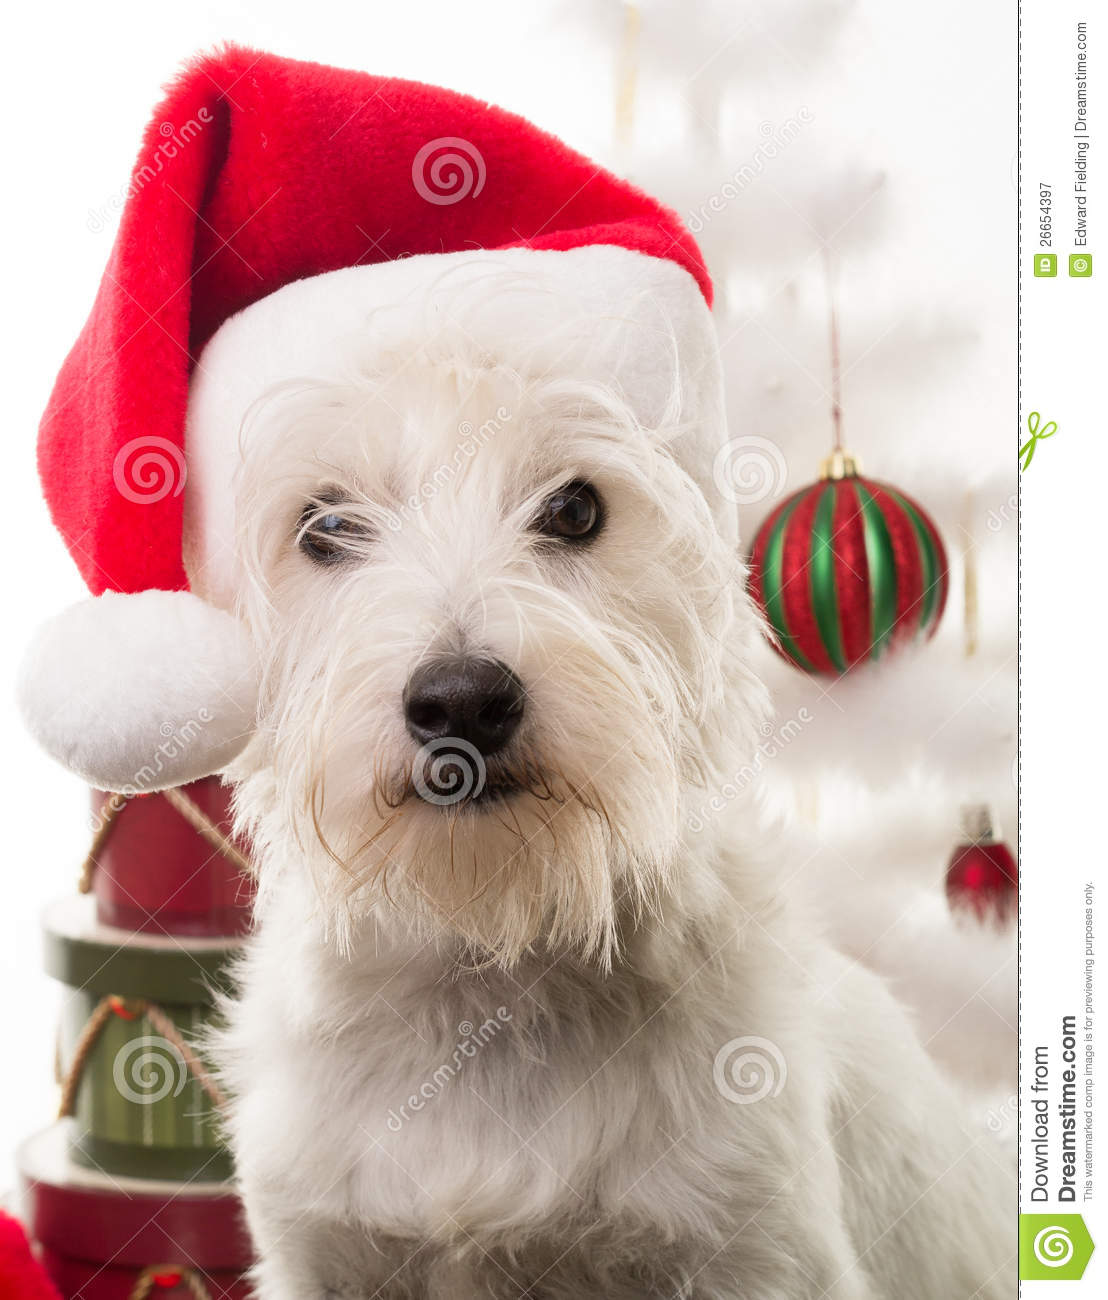 free christmas clip art with dogs - photo #39